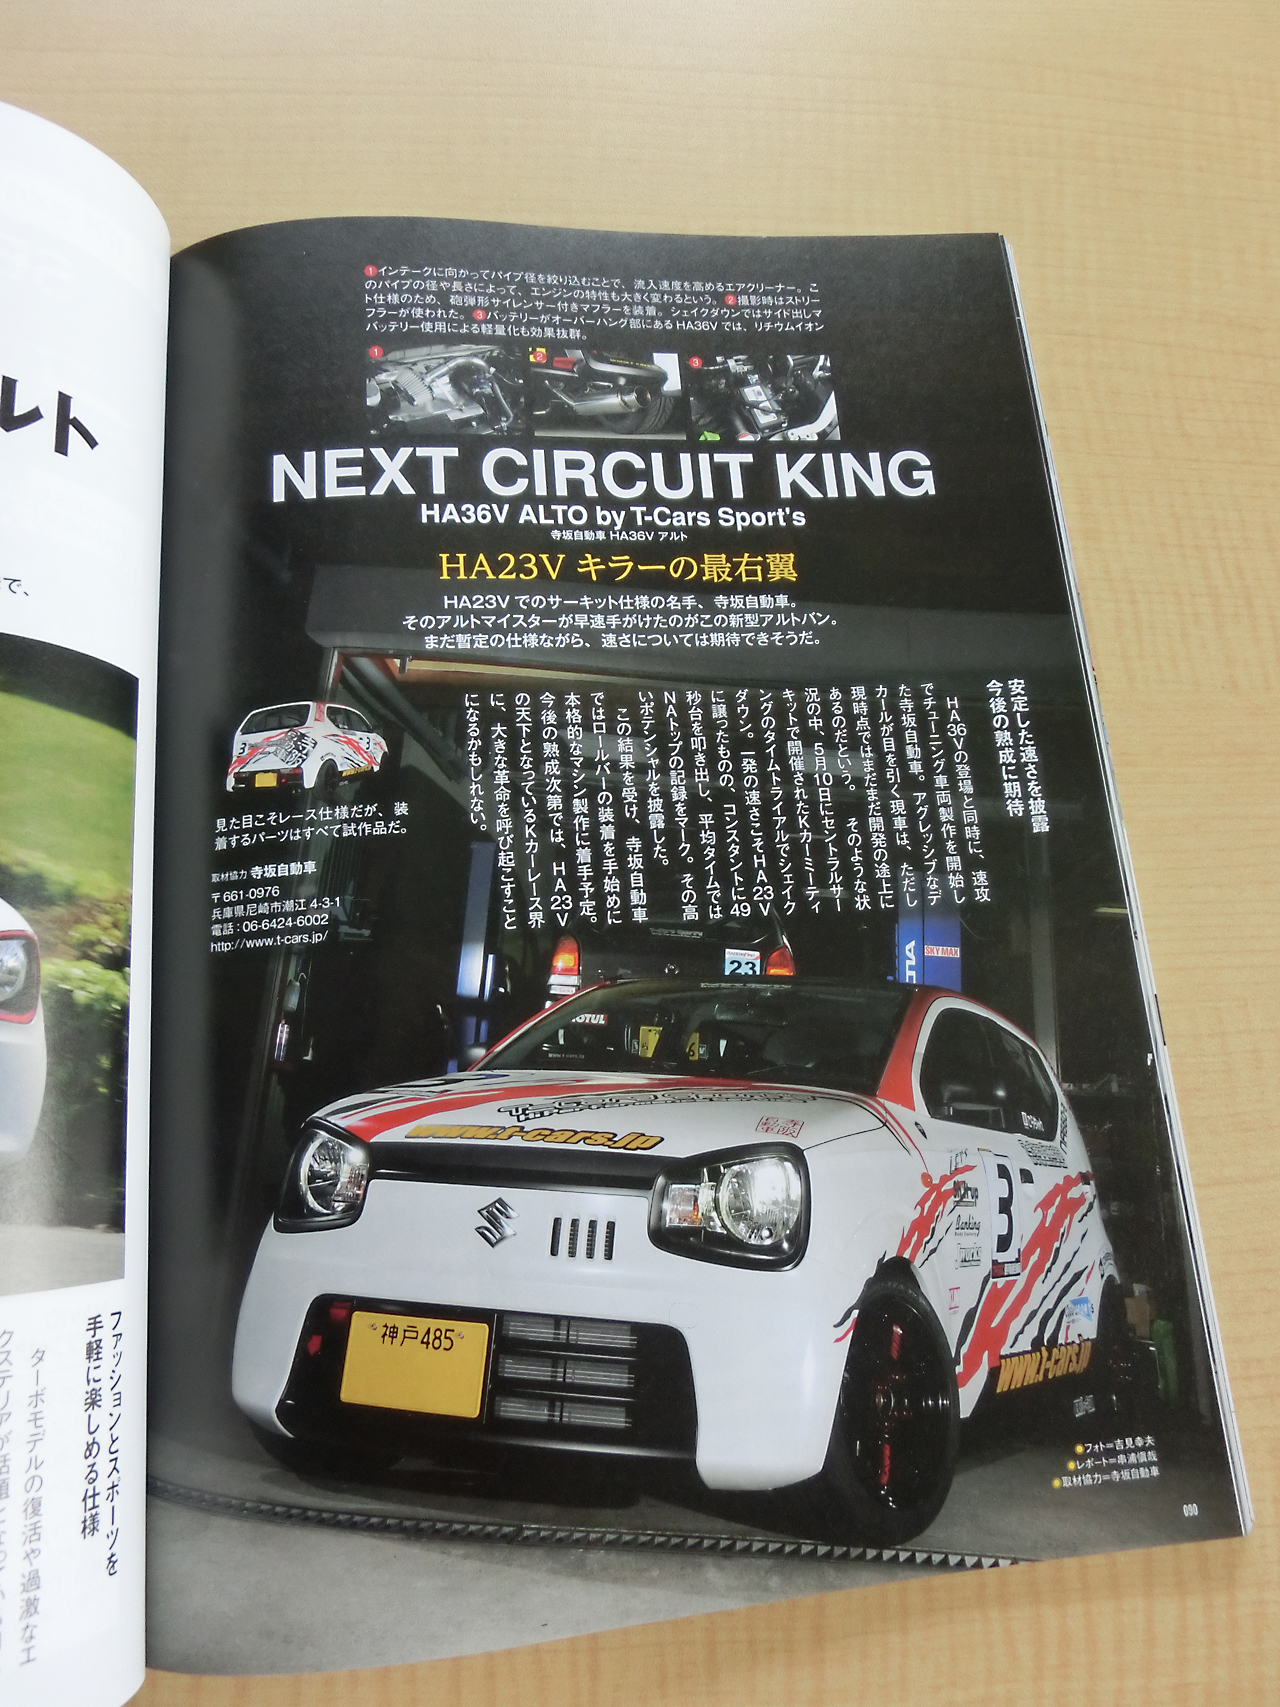 NEXT CIRCUIT KING HA36V アルト